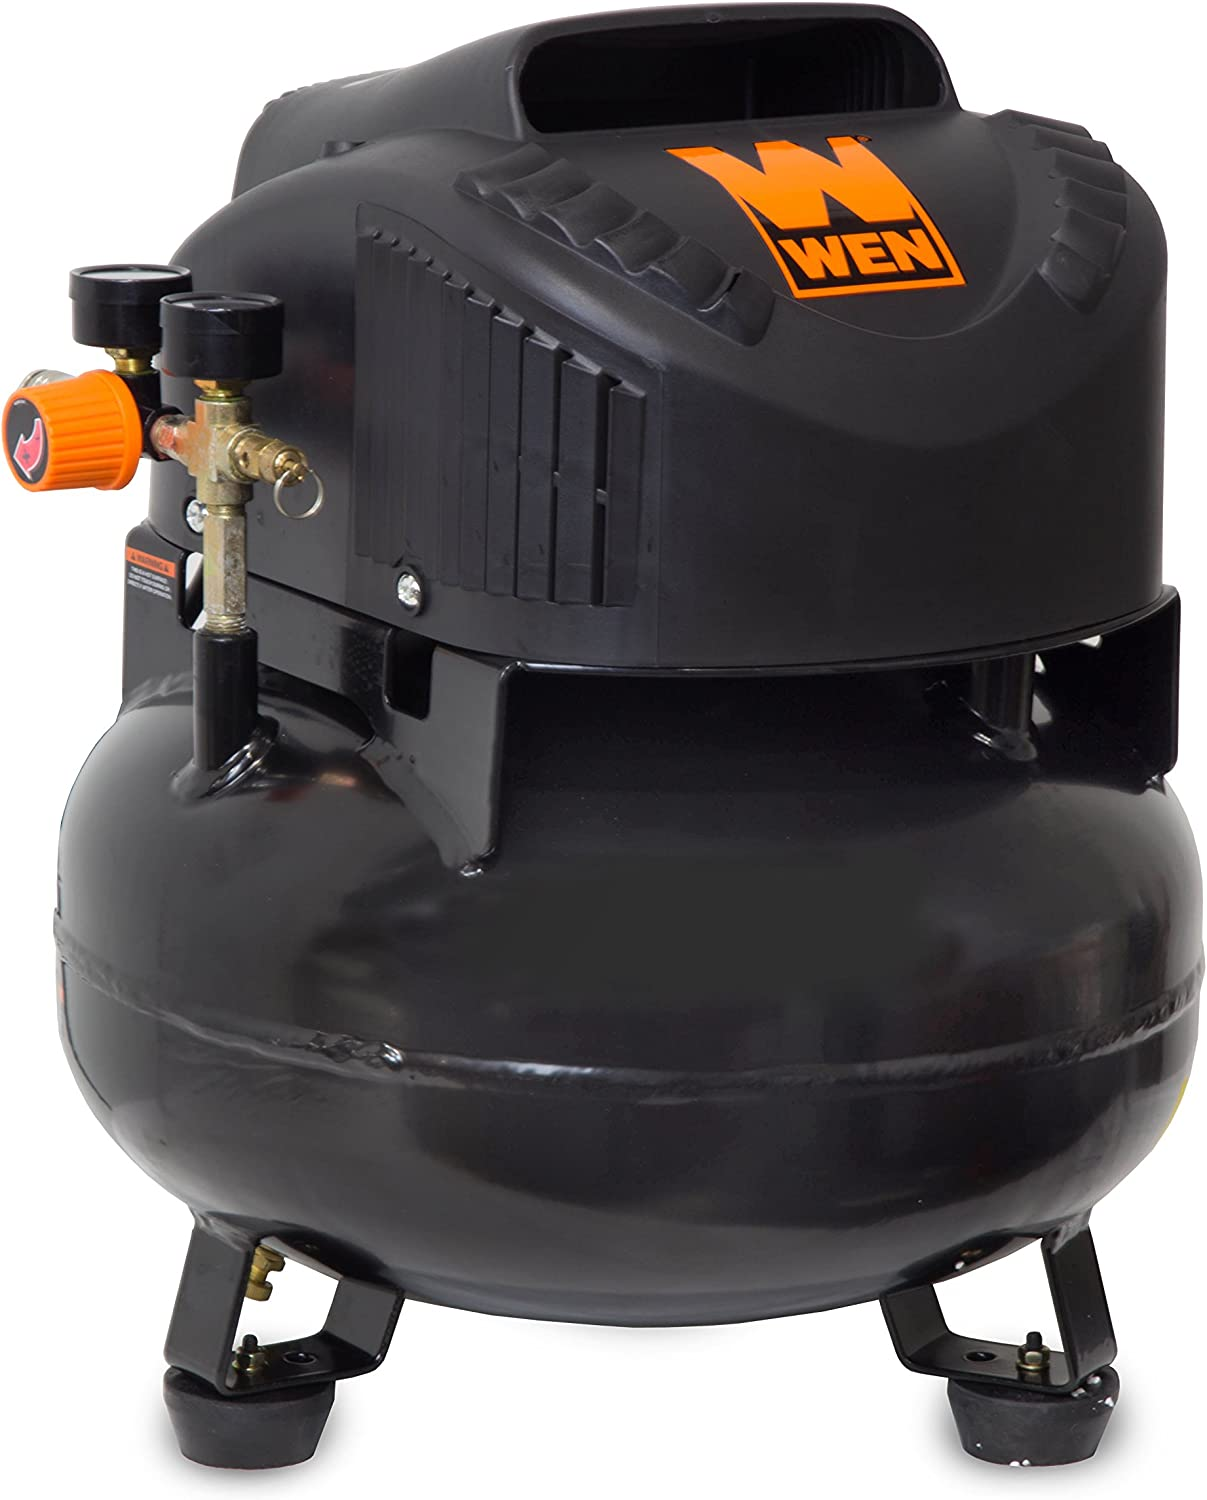 WEN 2286 6-Gallon Oil-Free Pancake Air Compressor, 150 PSI